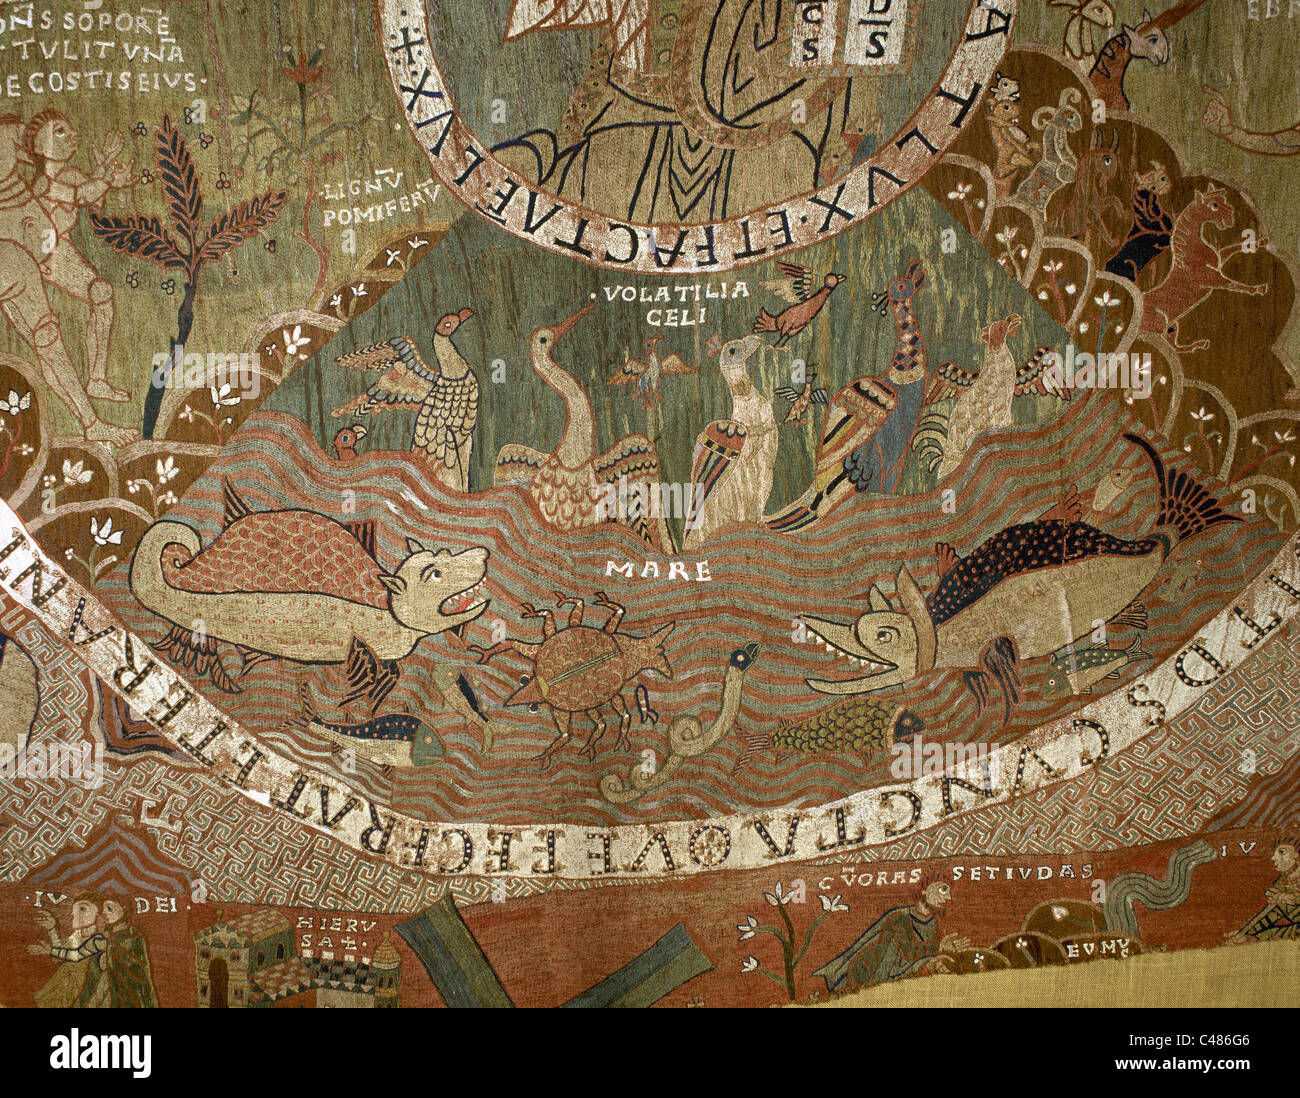 Romanesque Art. Tapestry of Creation or Girona Tapestry. Creation of birds and fish. Girona. Spain. - Stock Image